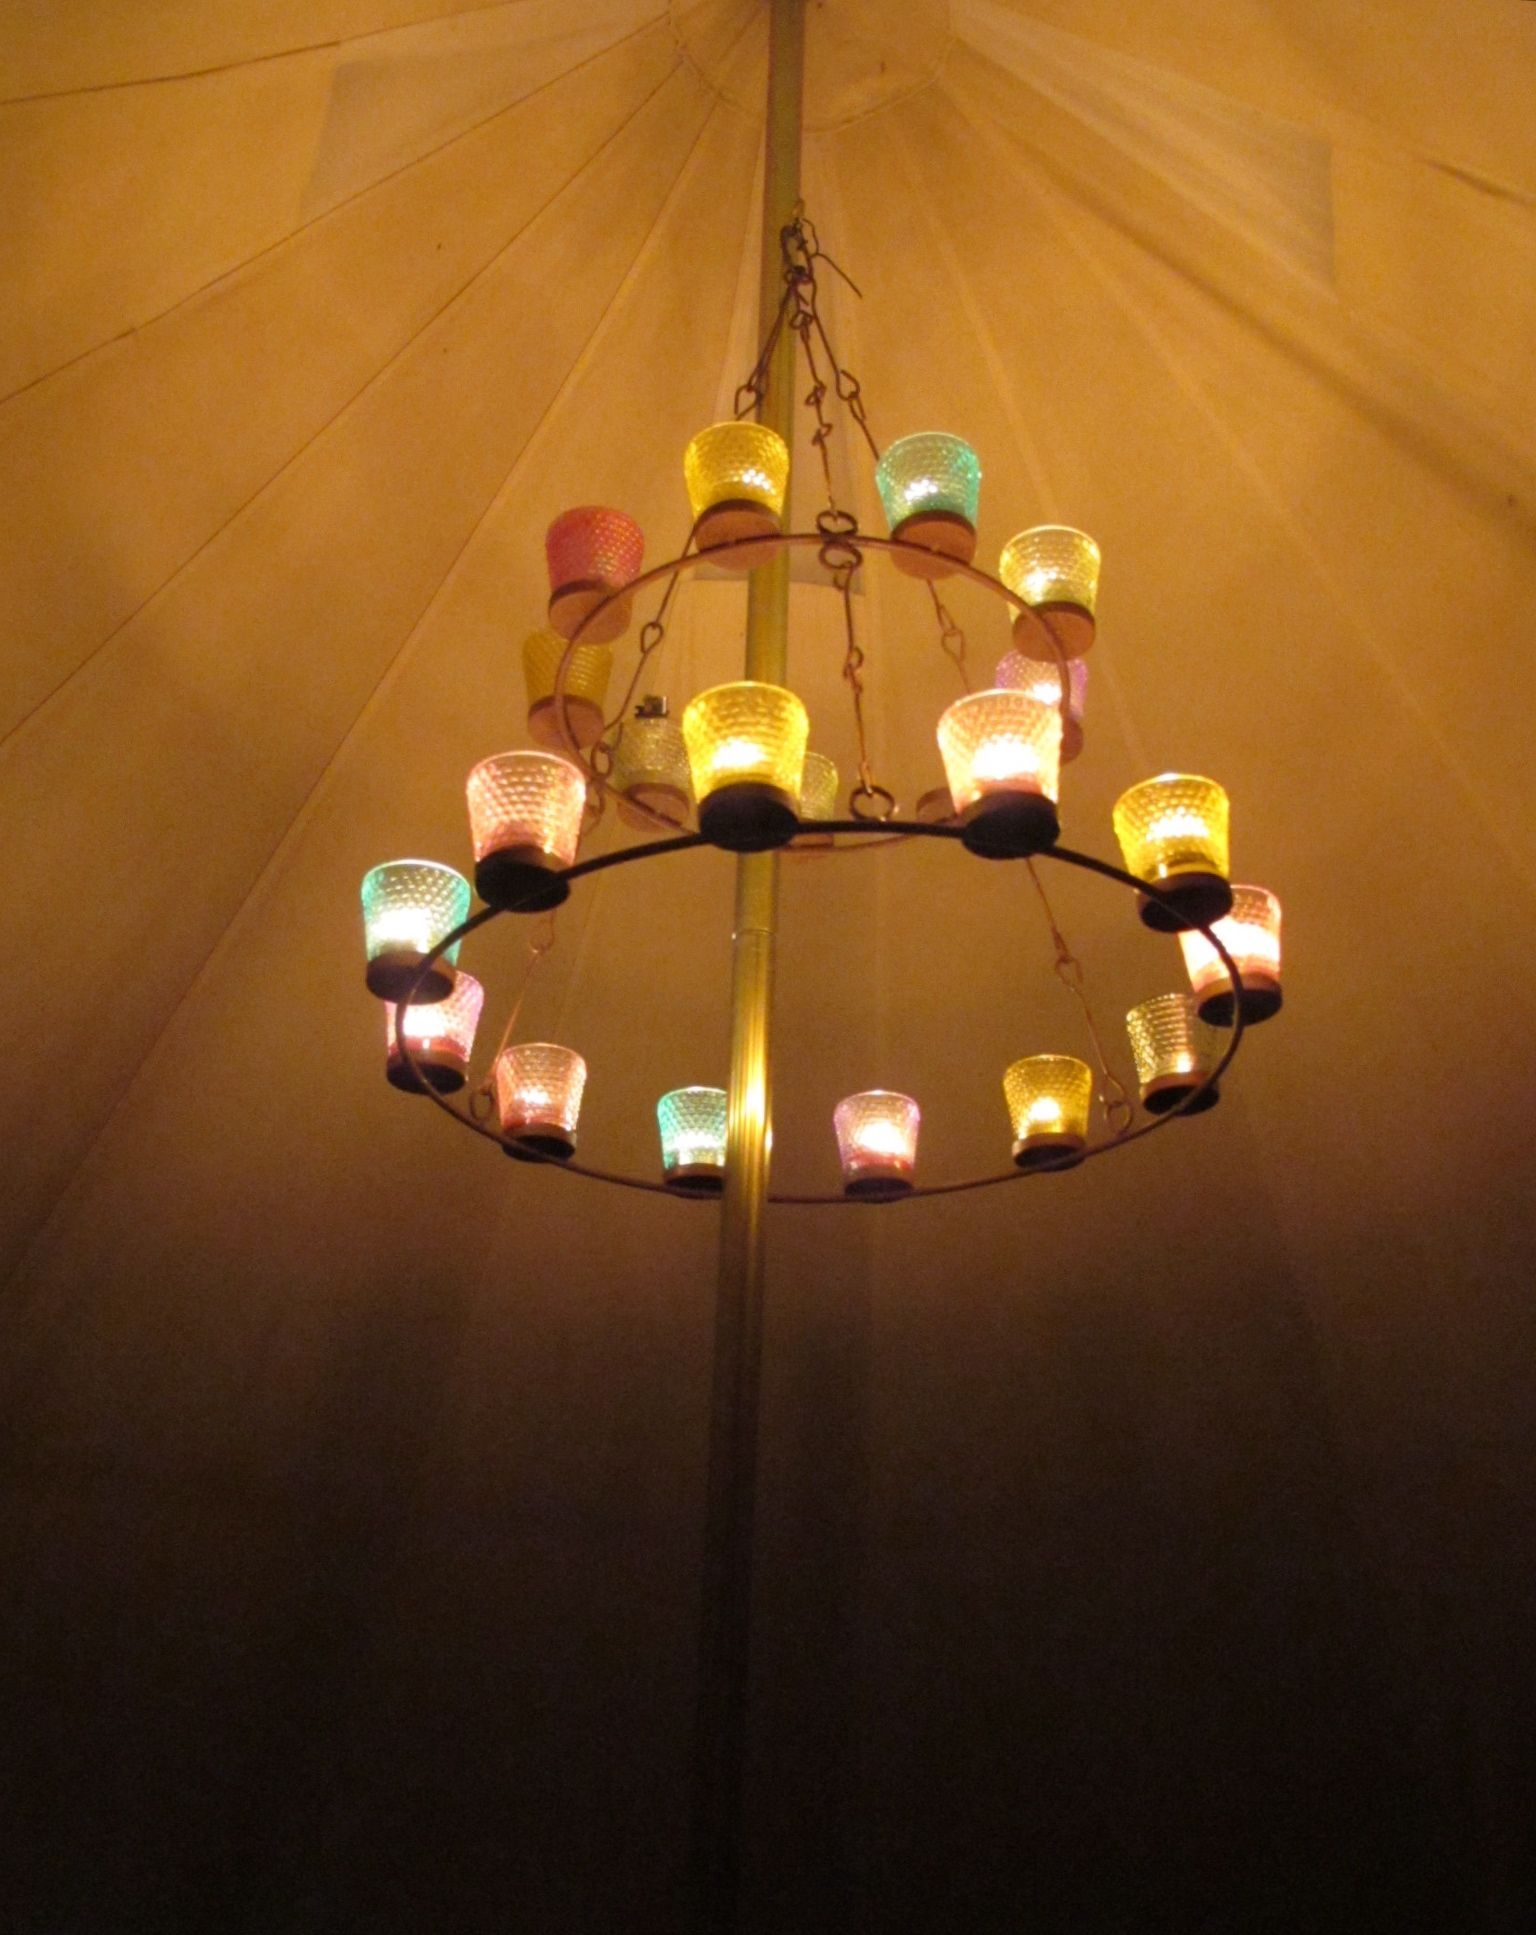 Electric tea lights and baby food jars instead? & The same tea light chandelier I have in my bell tent :) | Camping ...